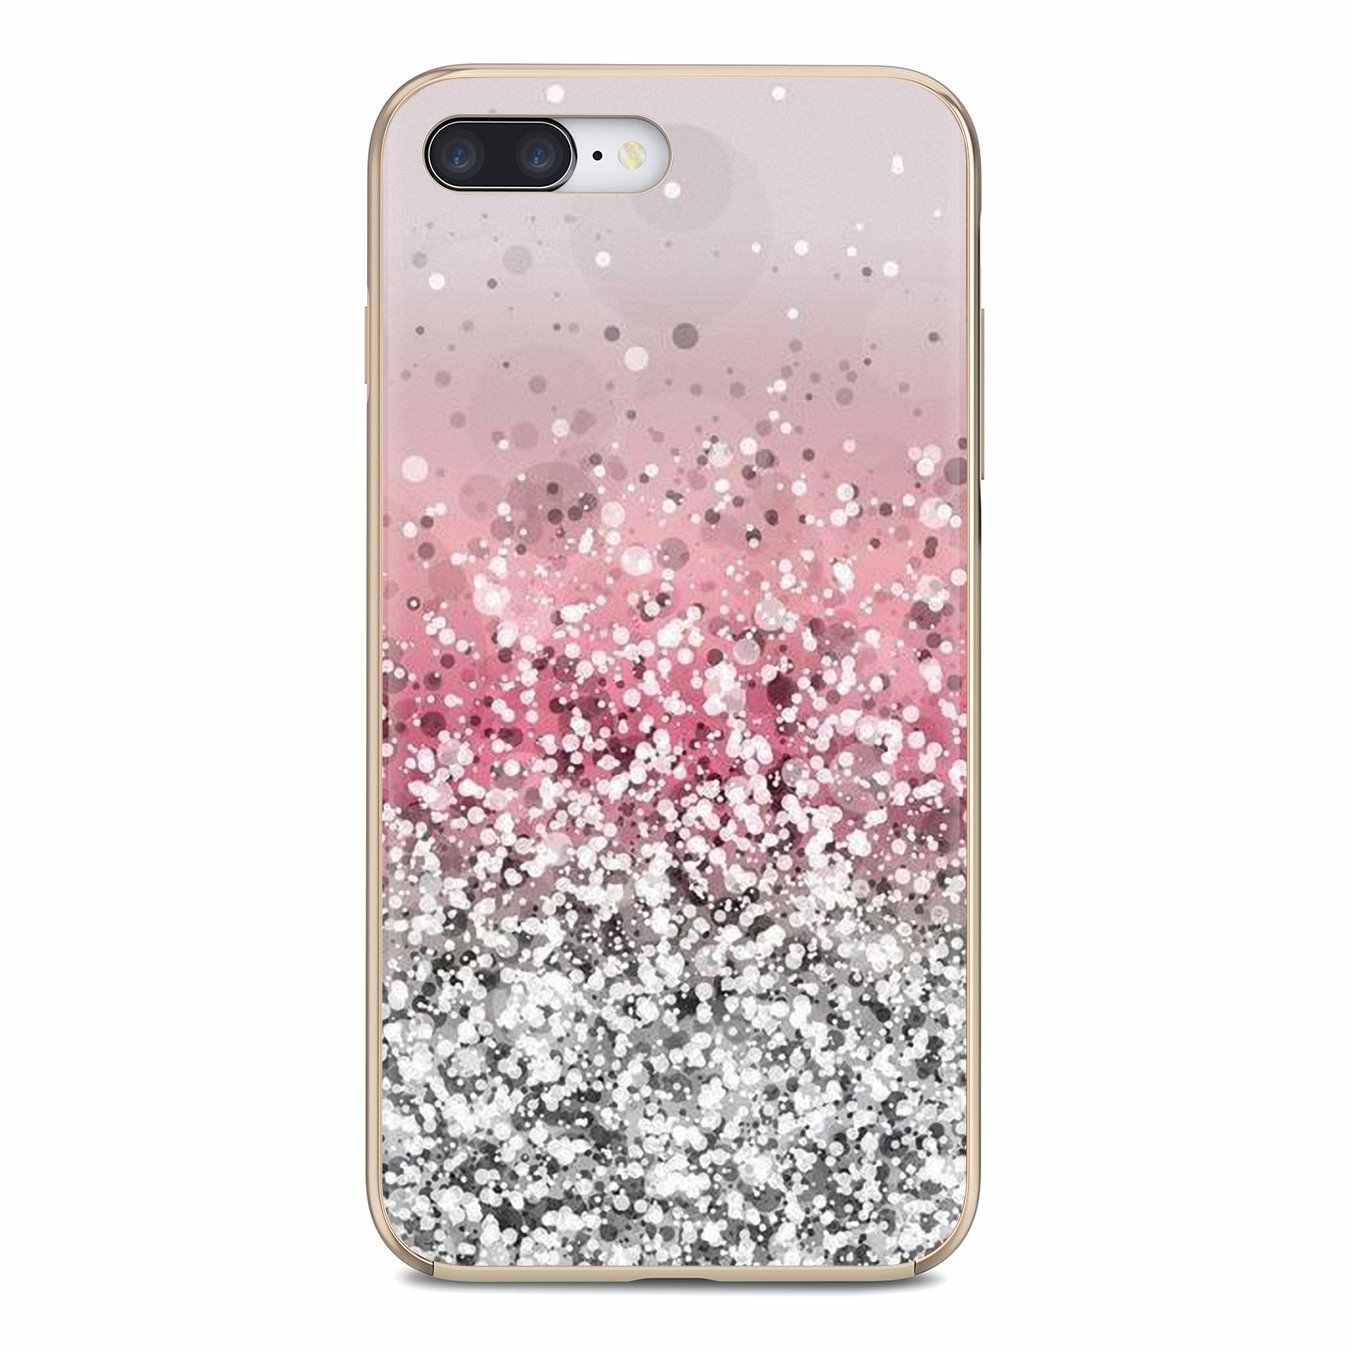 Soft Skin Cover Pastel Paars Sparkle Glitter Kunstwerk Voor Xiaomi Redmi 4A 7A S2 Note 8 3 3S 4 4X 5 Plus 6 7 6A Pro Pocophone F1